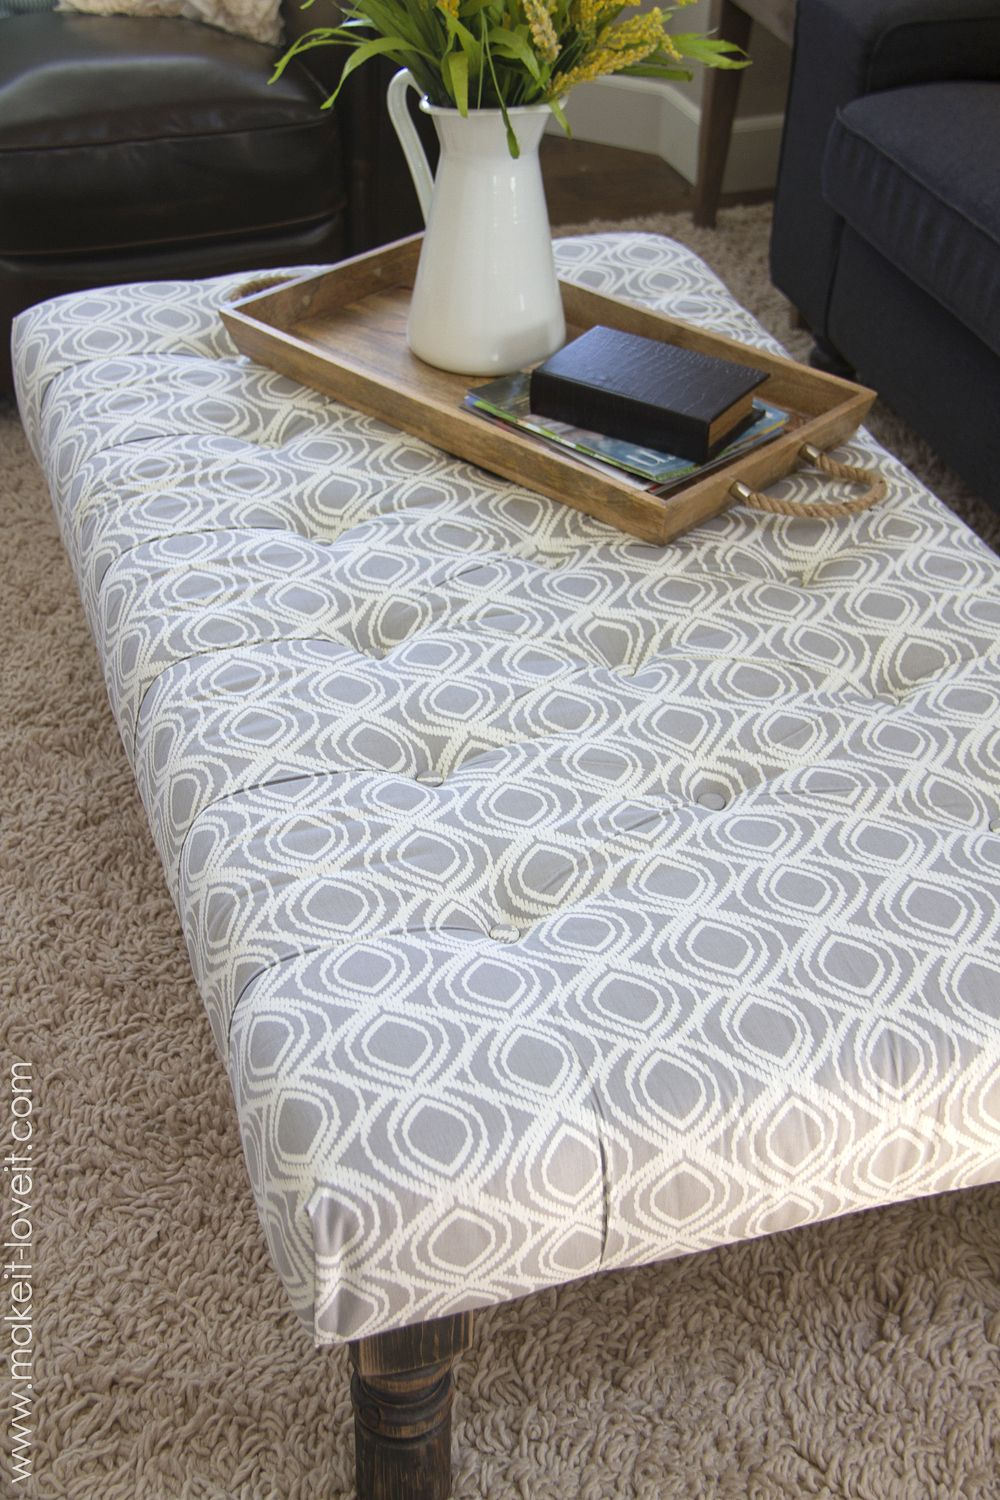 Diy Ottoman Might Be Great To Pad Our Coffee Table To Protect Out Little Soon To Be Cruiser Diyfurniturei Diy Ottoman Coffee Table Diy Ottoman Diy Furniture [ 1024 x 773 Pixel ]